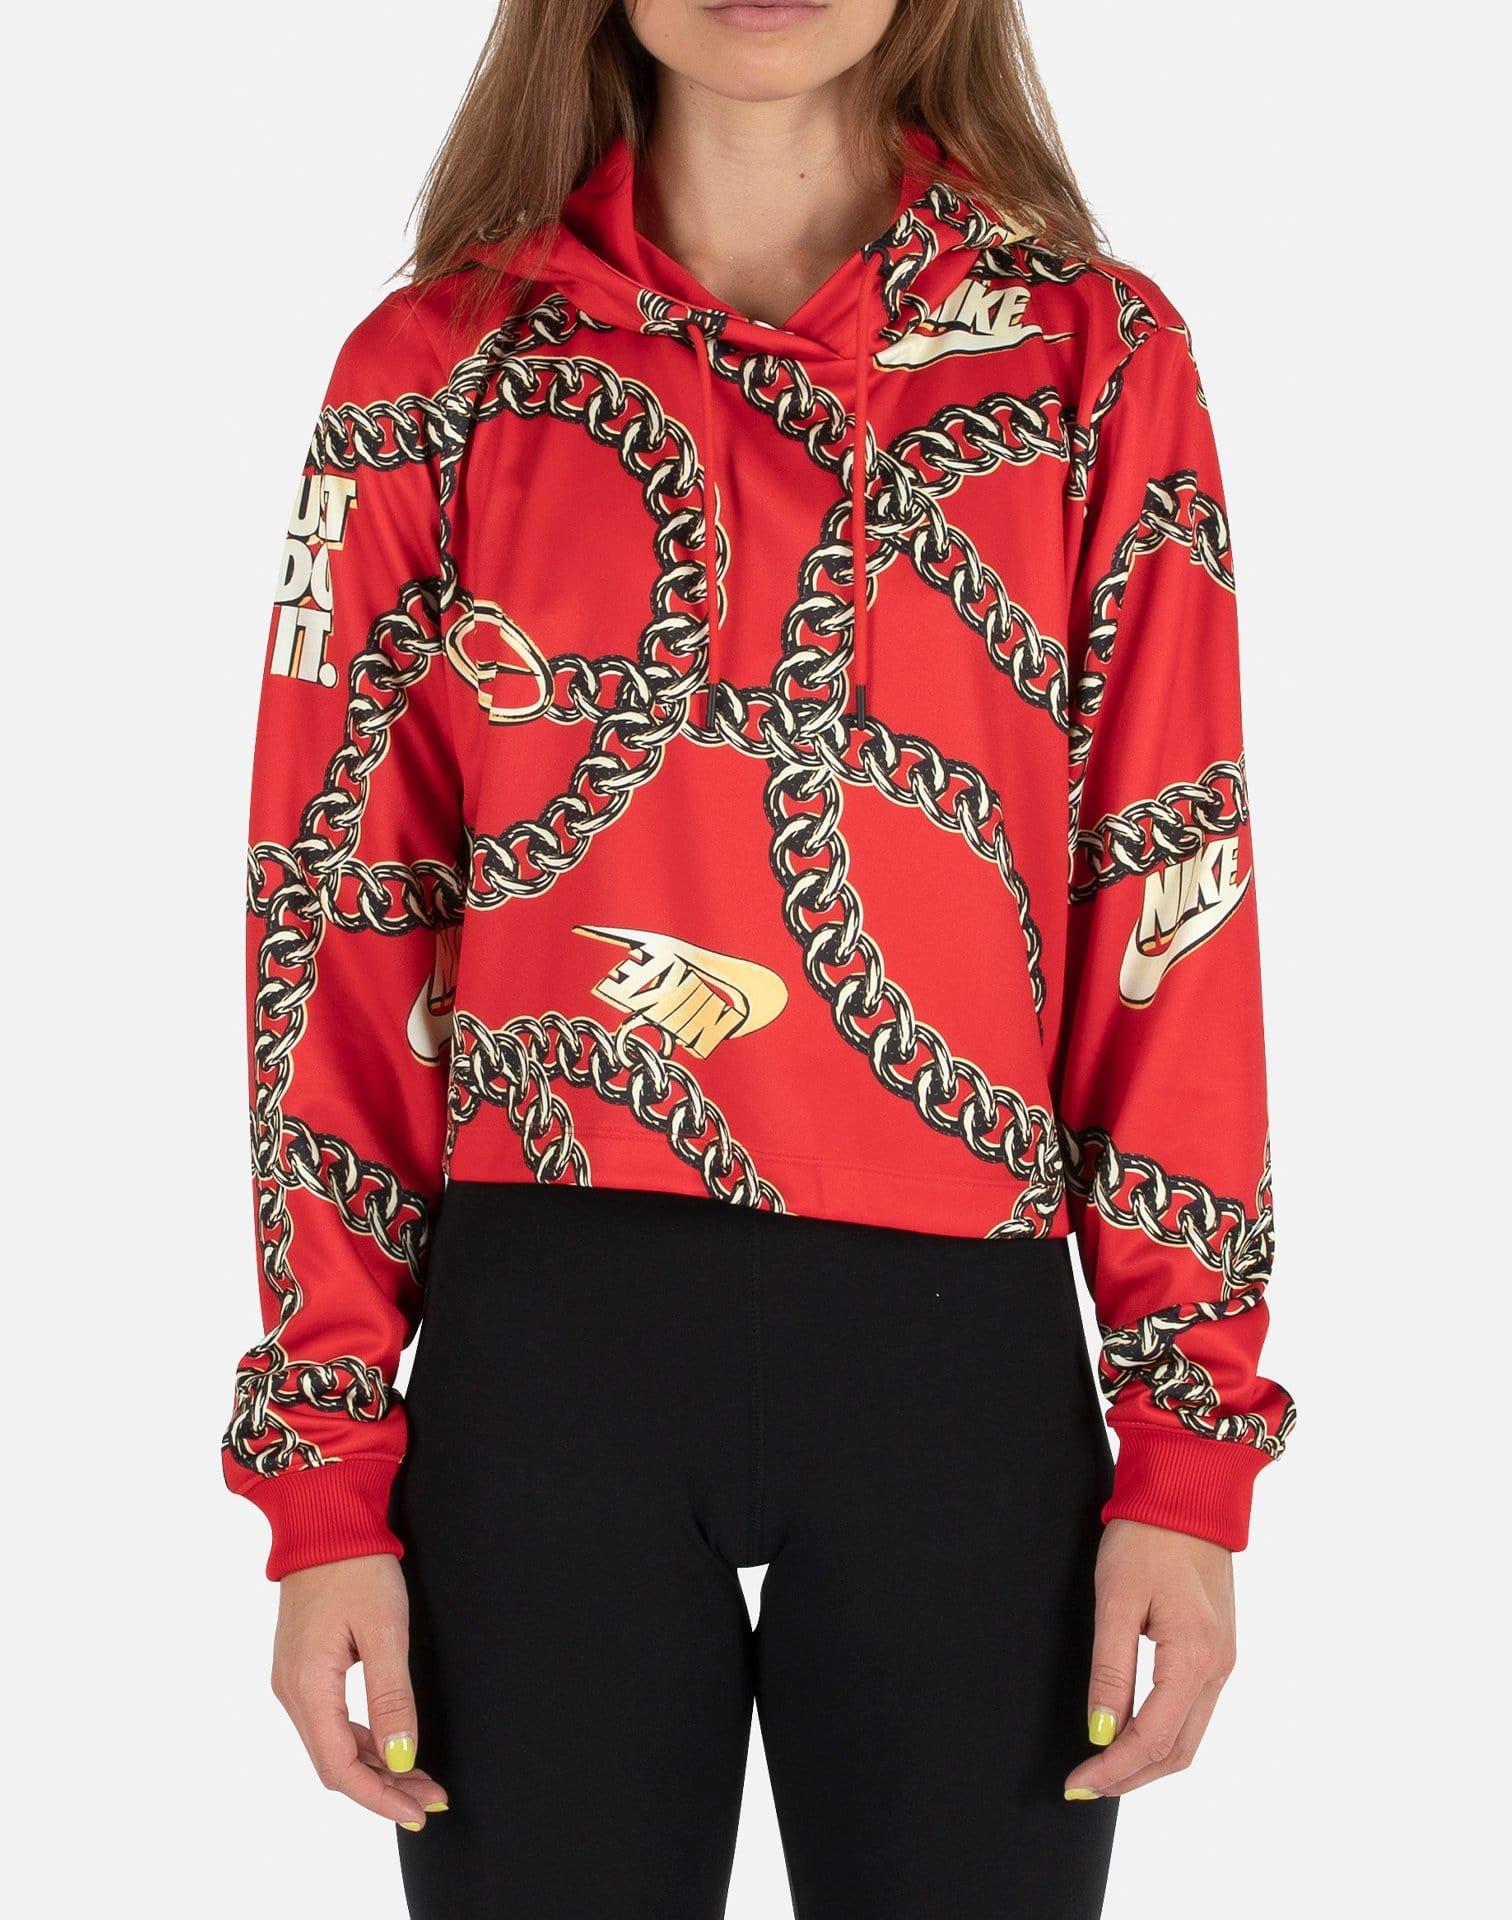 NSW ICON CLASH CROPPED HOODIE